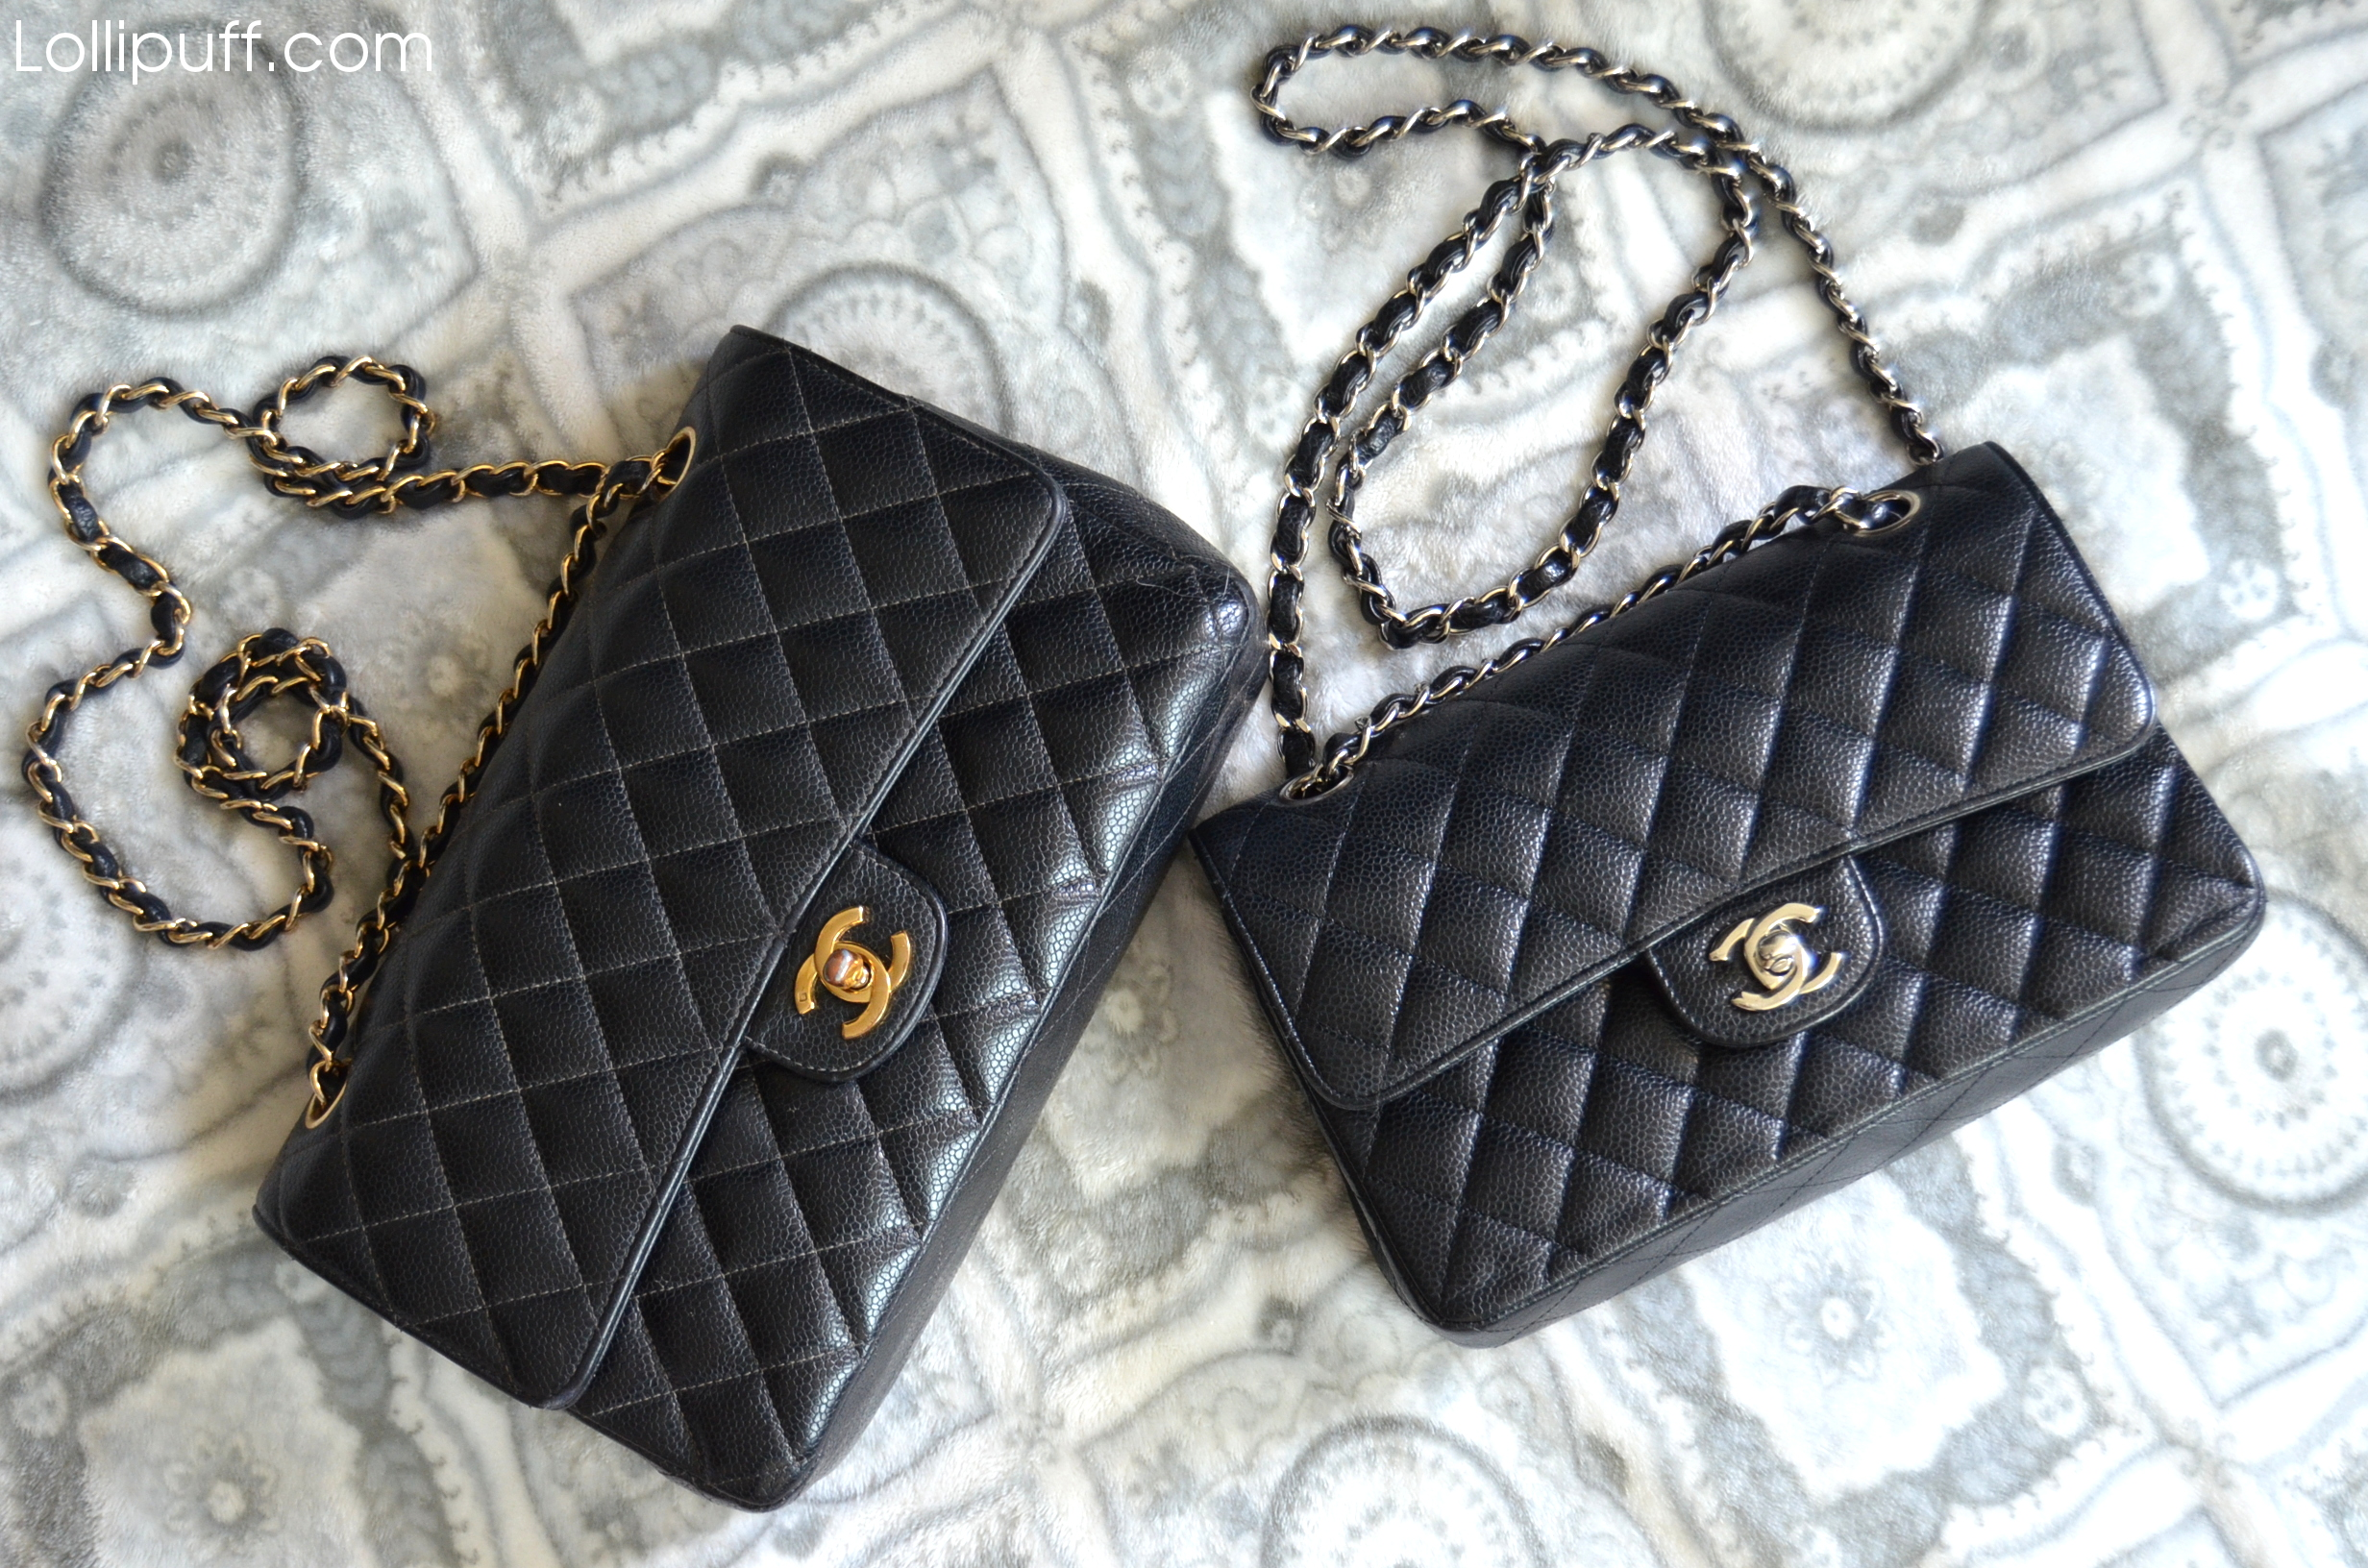 6dfb72cc000f Chanel Classic Double Flap: Small vs Medium & Gold vs Silver | Lollipuff